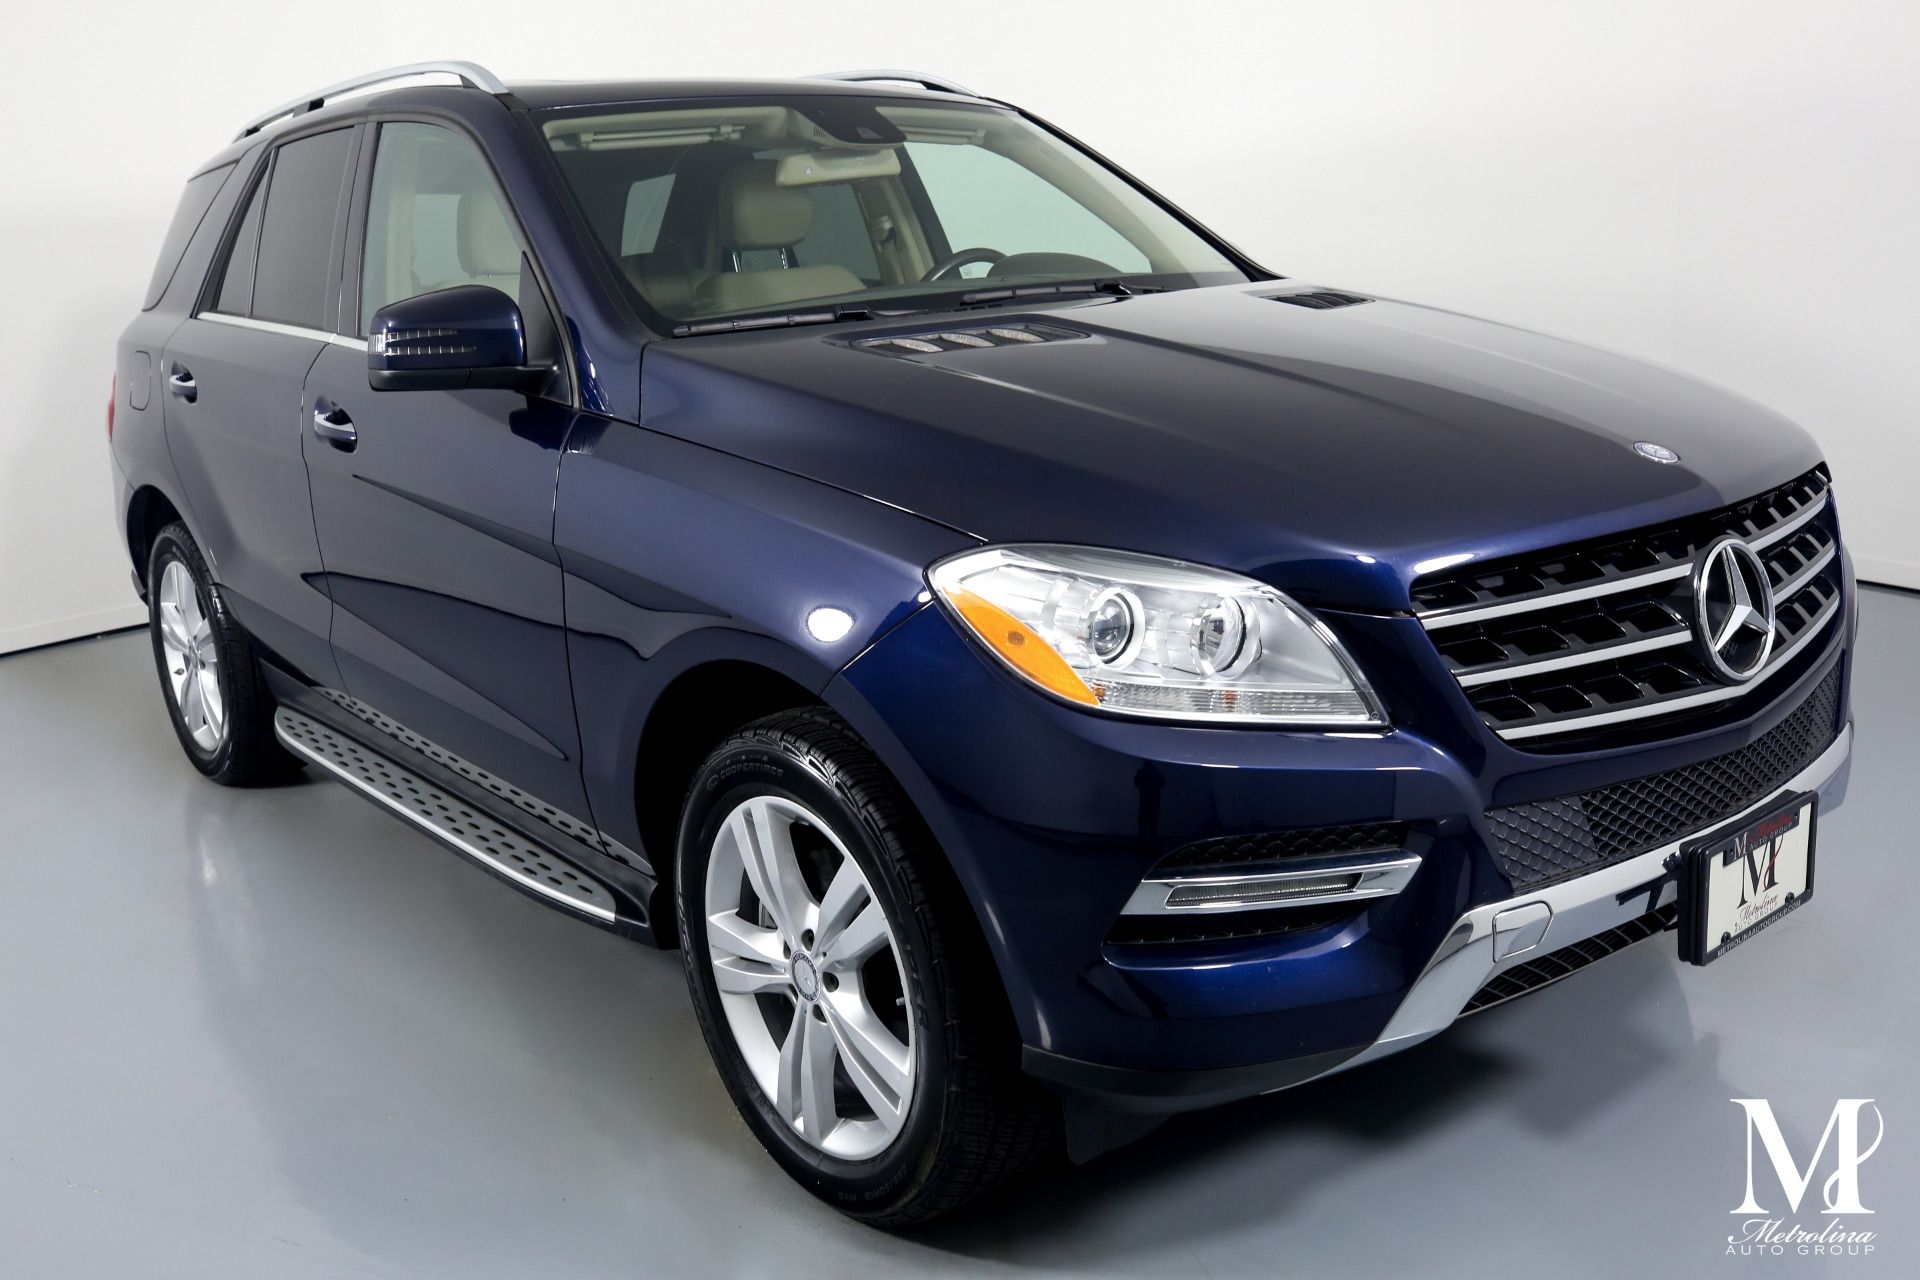 Used 2015 Mercedes-Benz M-Class ML 350 4MATIC for sale $24,996 at Metrolina Auto Group in Charlotte NC 28217 - 2